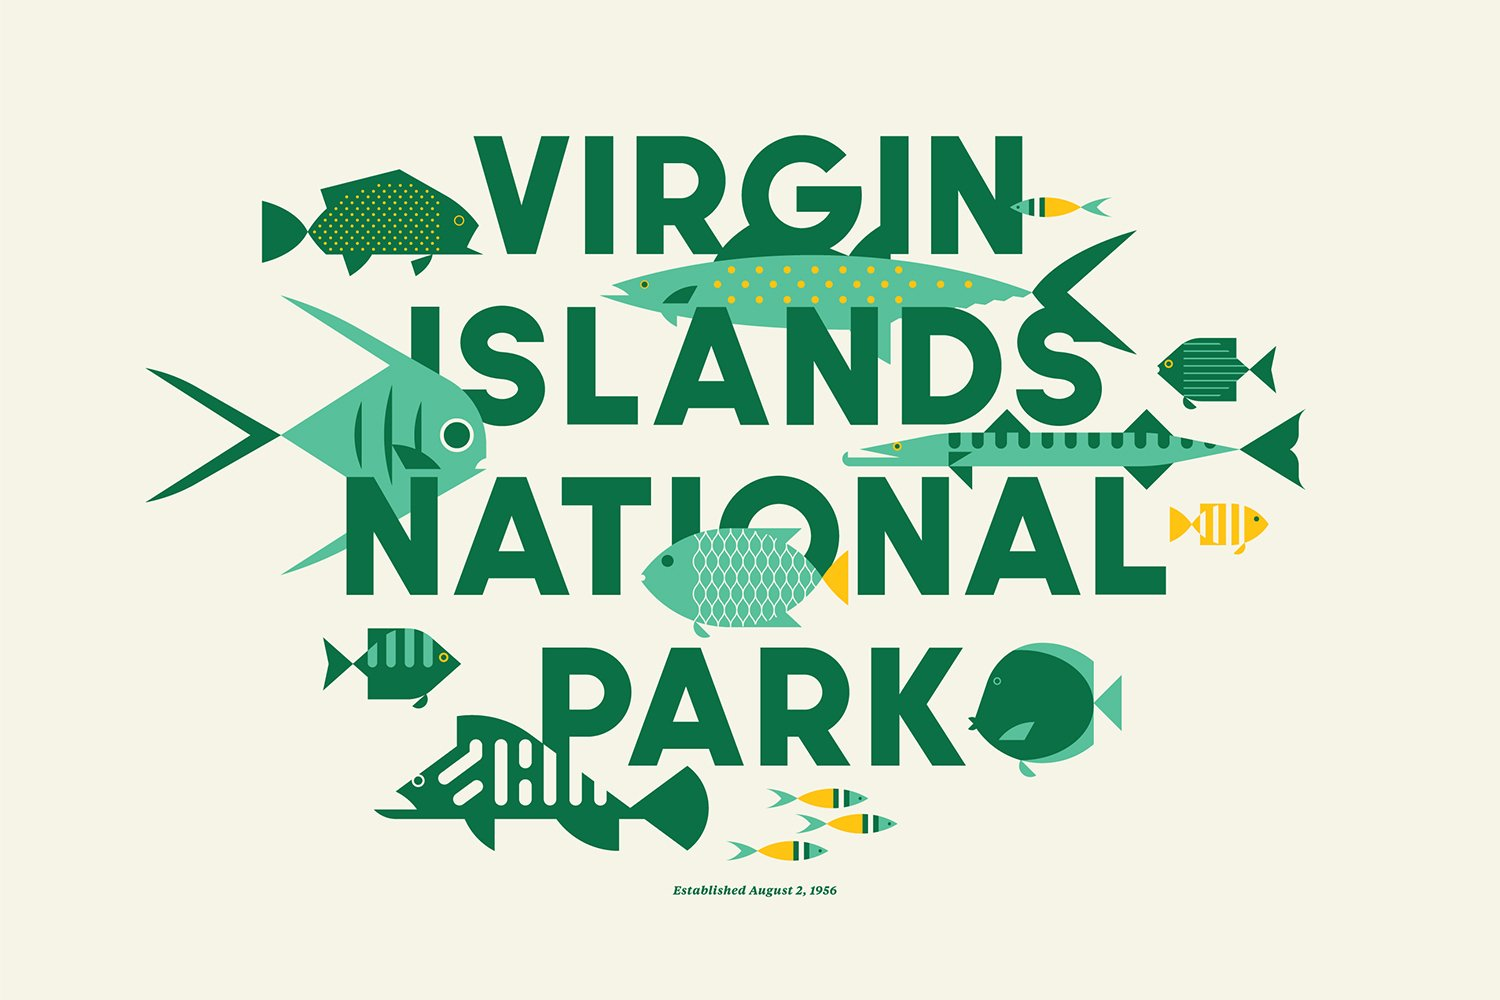 Virgin Islands National Park designed by Jay Fletcher  With Type Hike, 59 Graphic Designers Celebrate the National Park Service Centennial